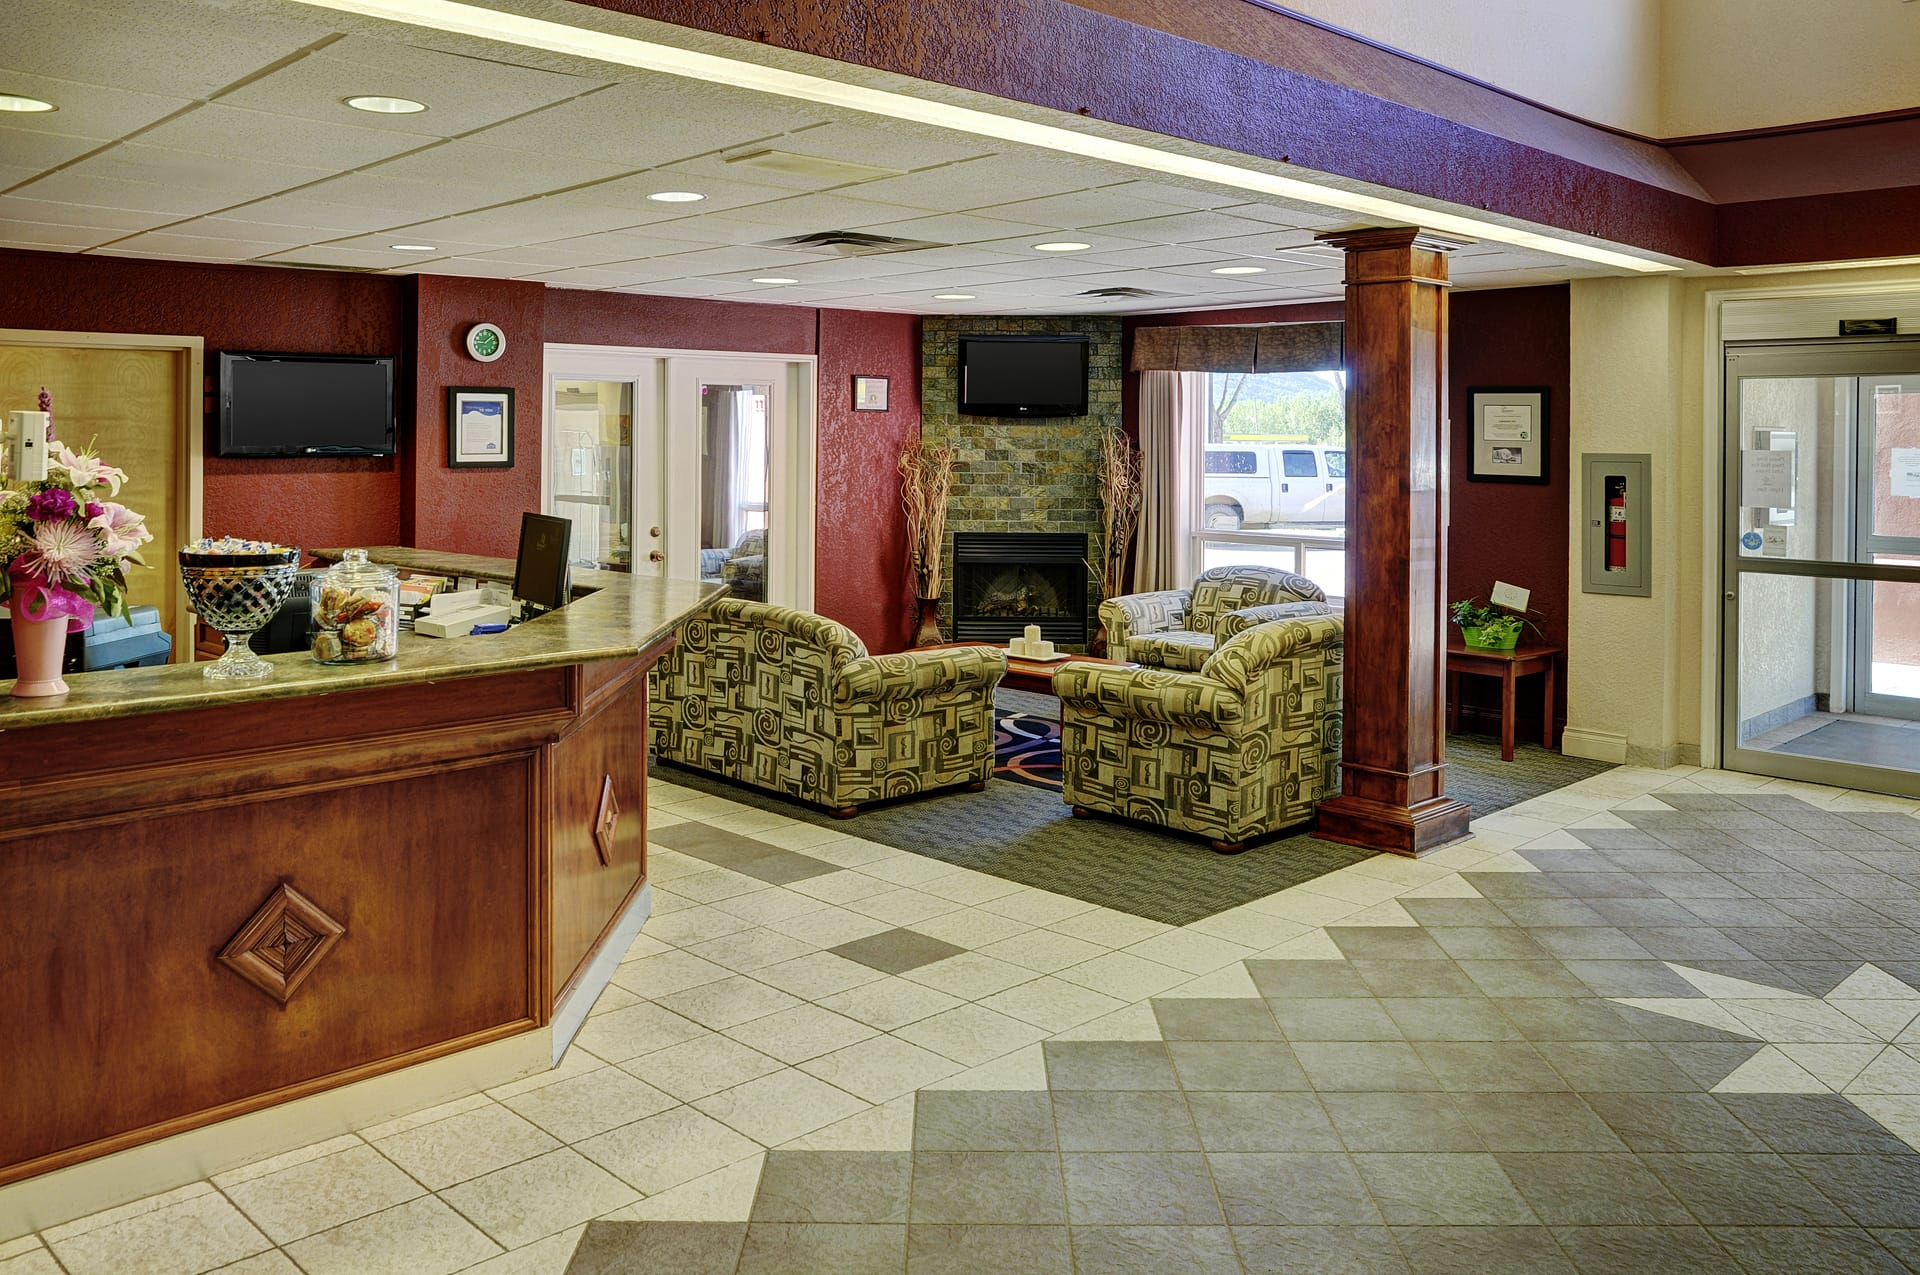 Lakeview Inns & Suites - Chetwynd